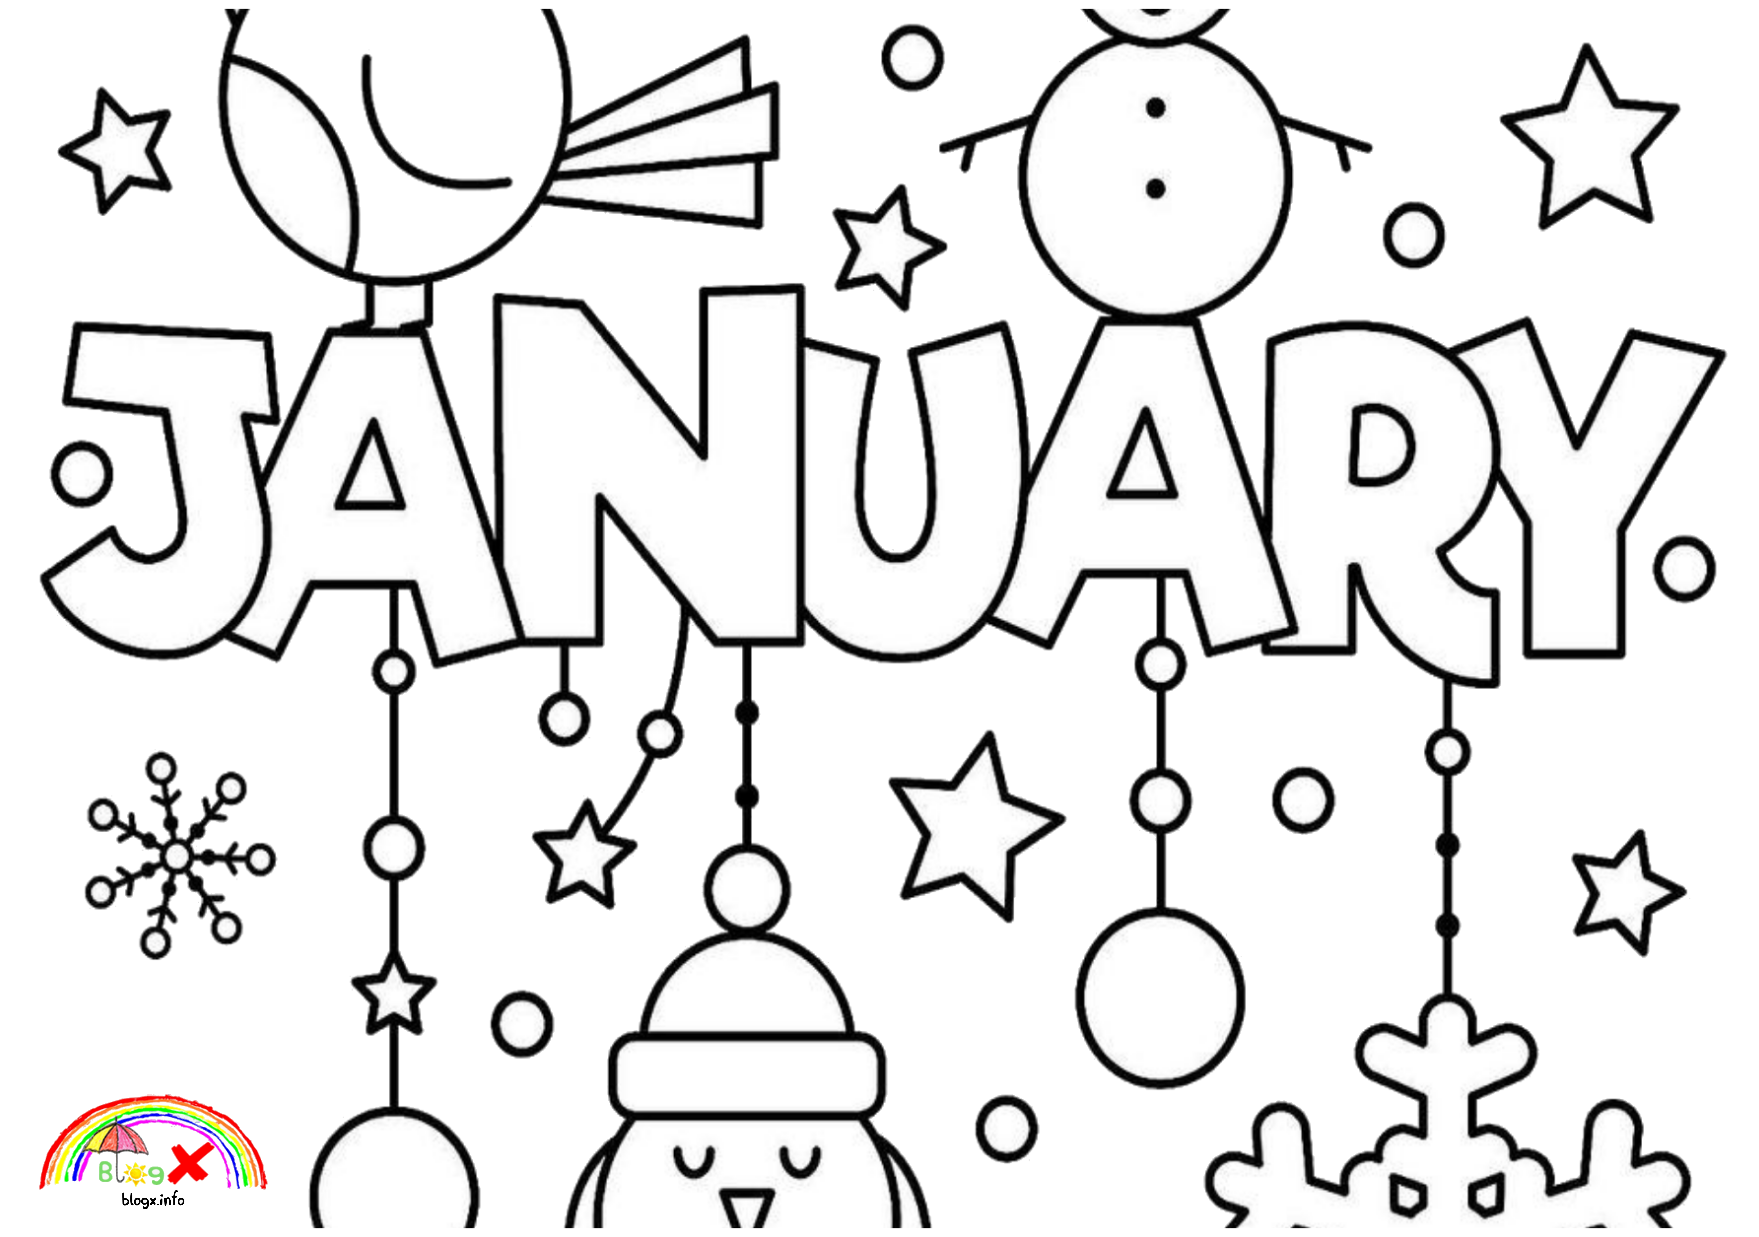 Pin By Kim White On Coloring Pages New Year Coloring Pages Cool Coloring Pages Coloring Pages For Kids